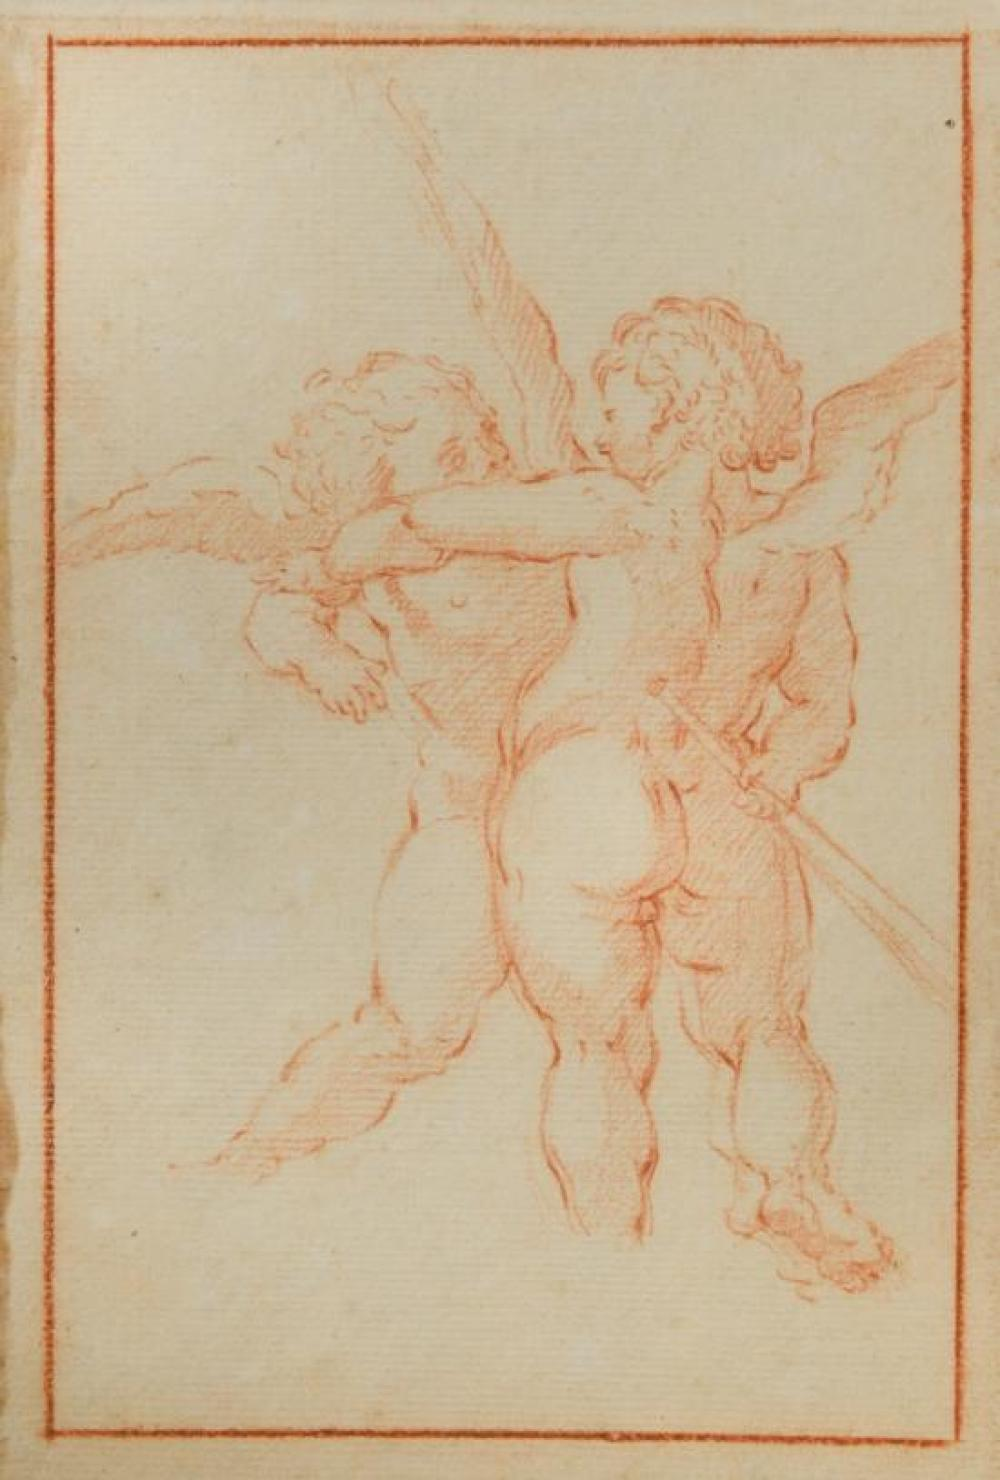 Italian School, 17th Century Putti embracing; A Hand holding a staff